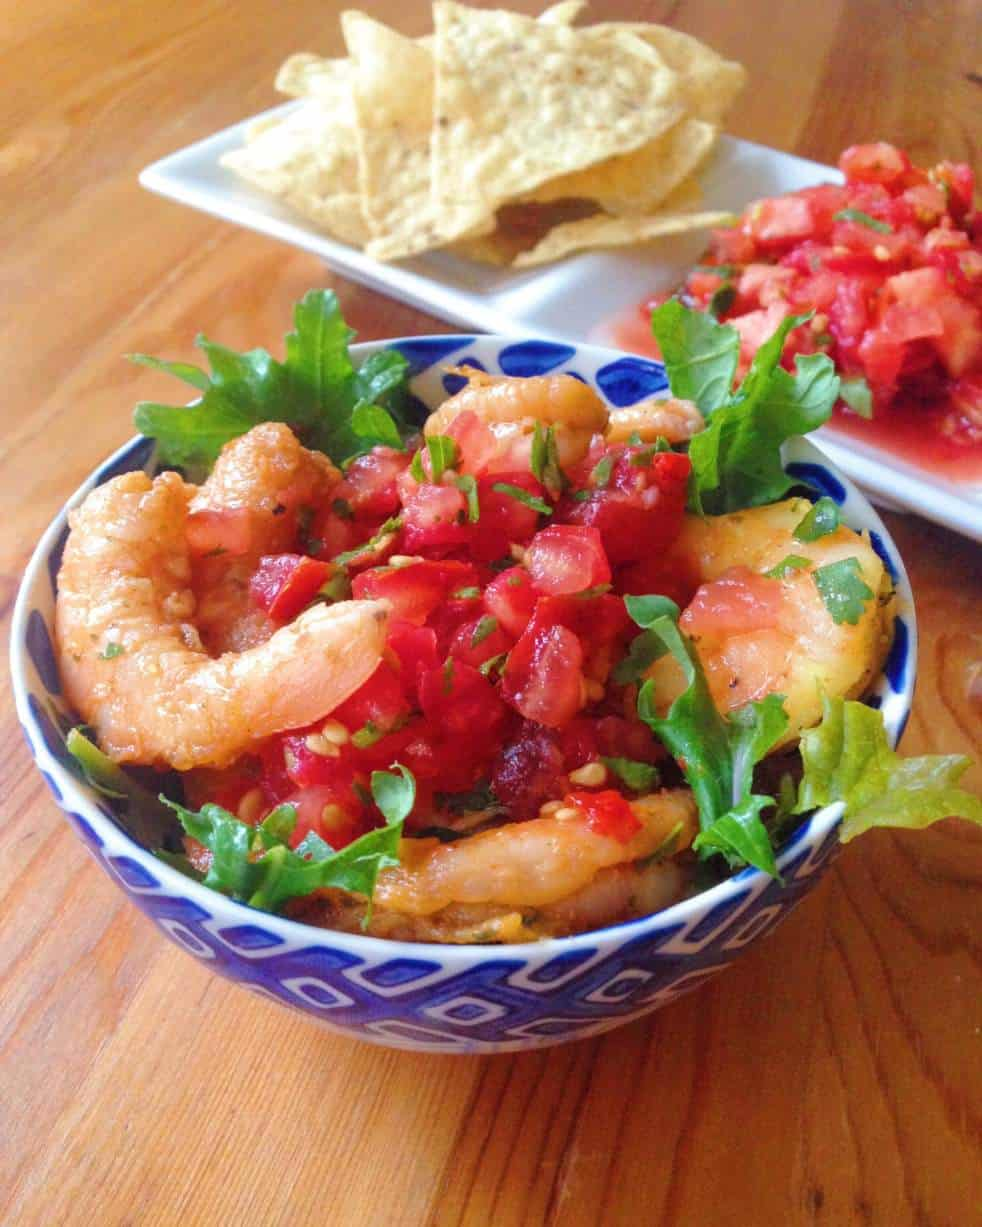 shrimp ceviche as a side dish